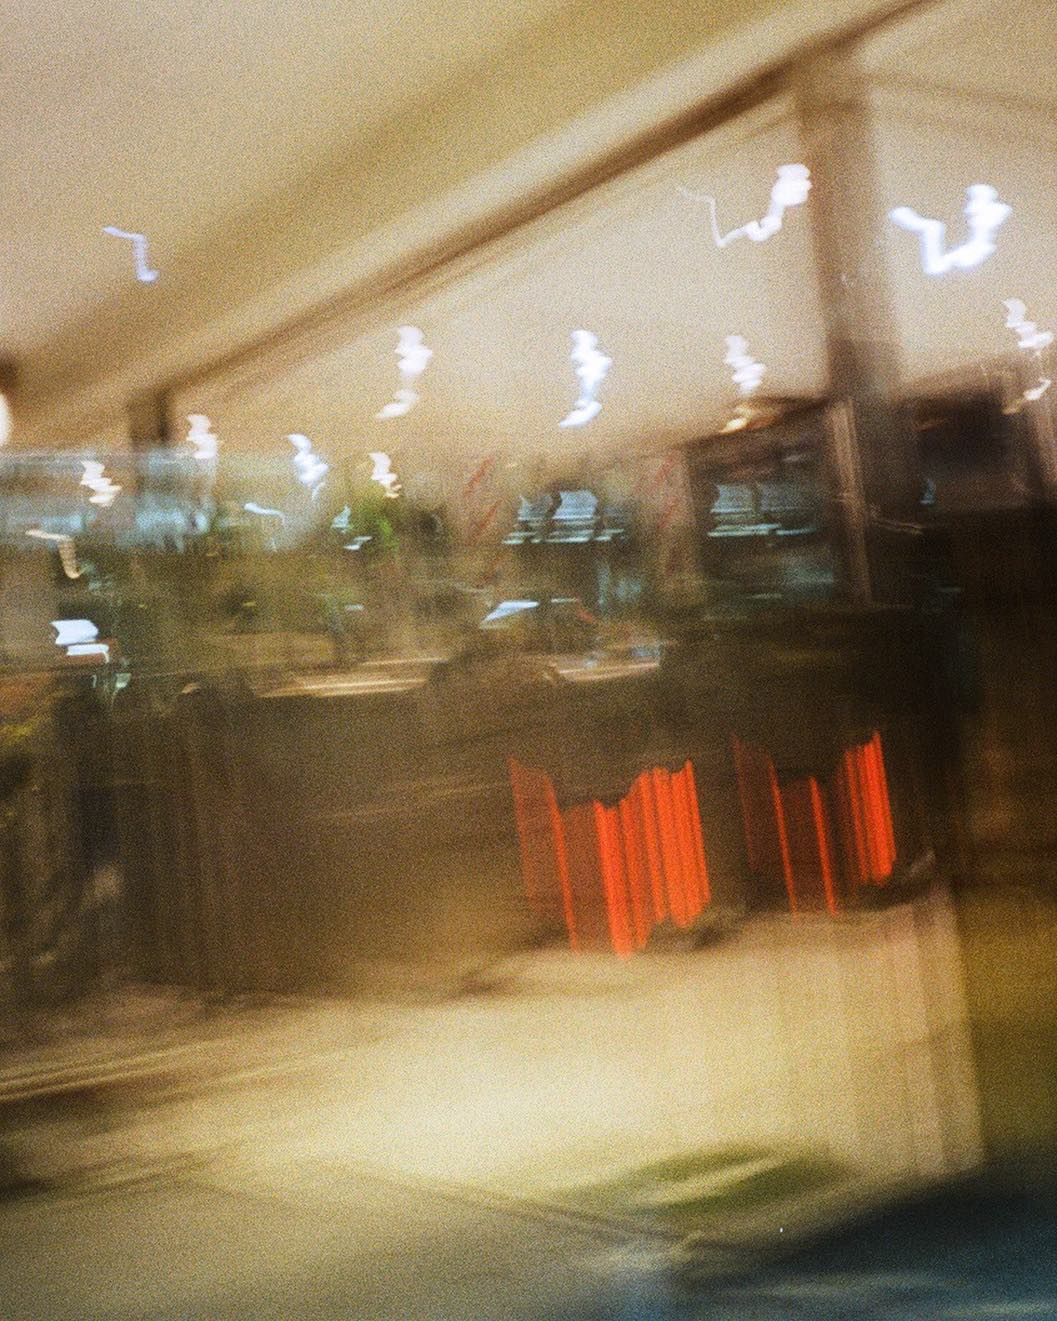 #35mm #errantexposure #bxl